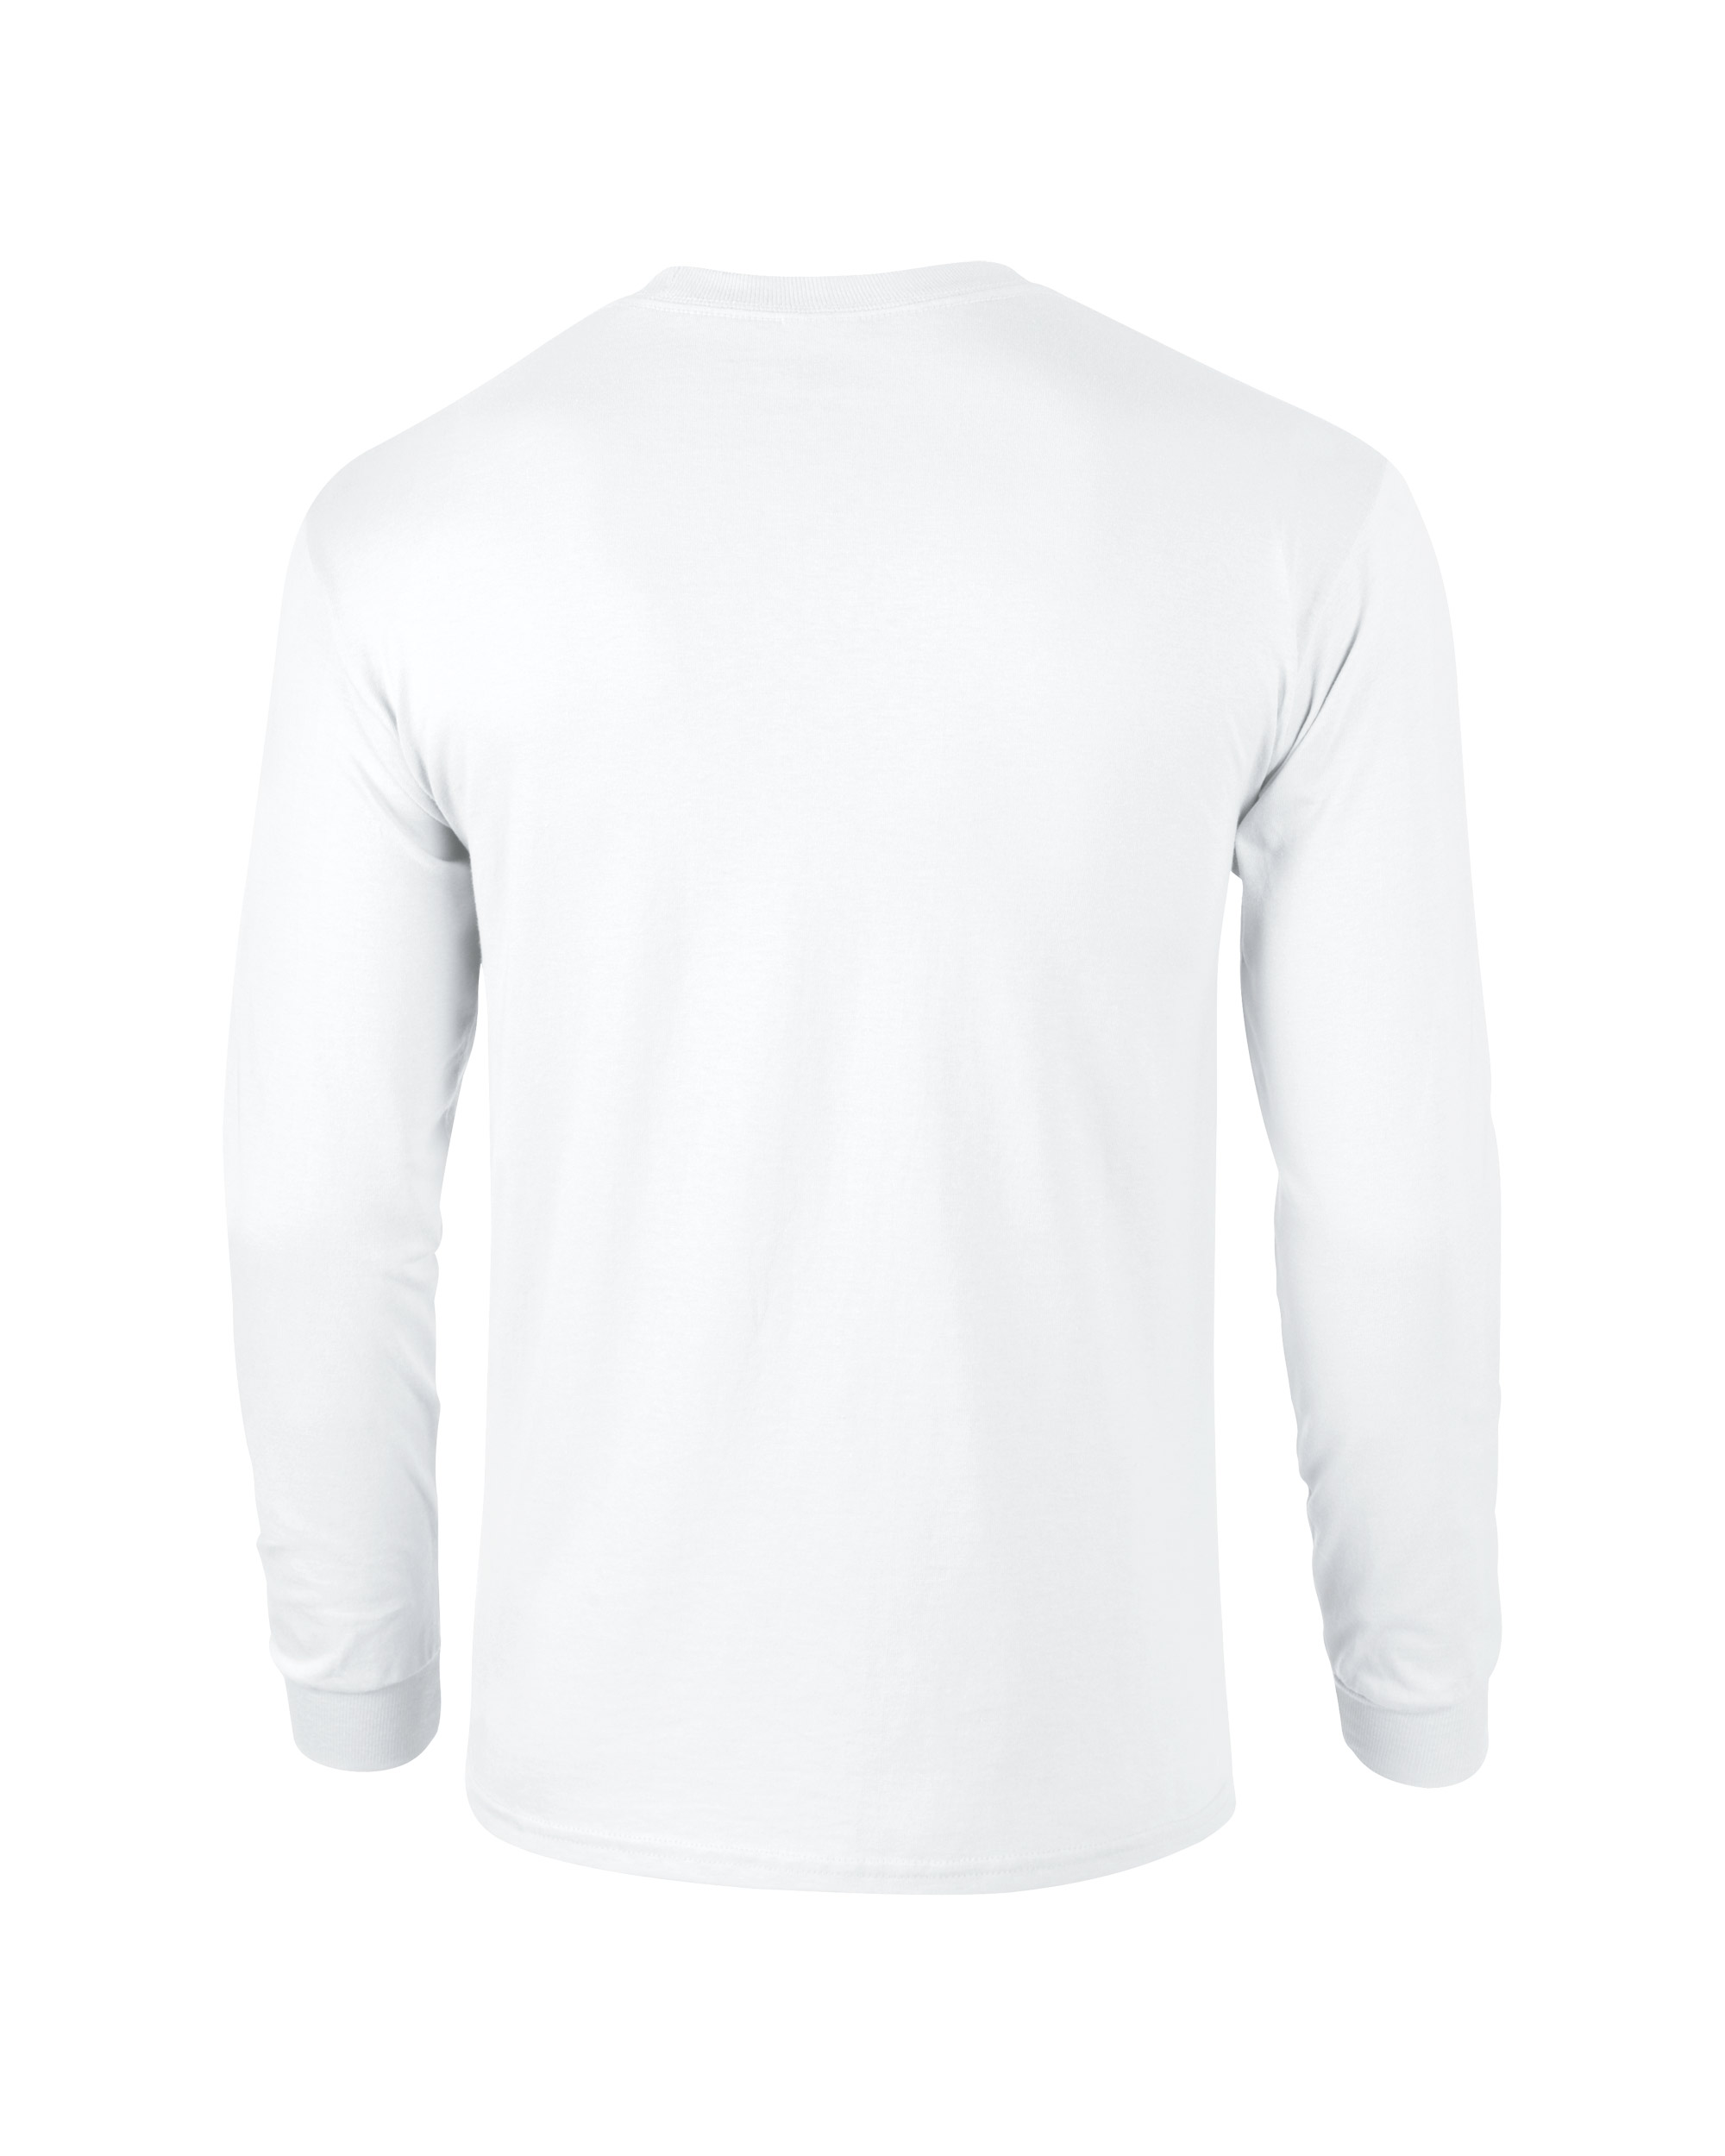 Gildan Adult Unisex Ultra Cotton Long Sleeve T-Shirt - Team Shirt Pros